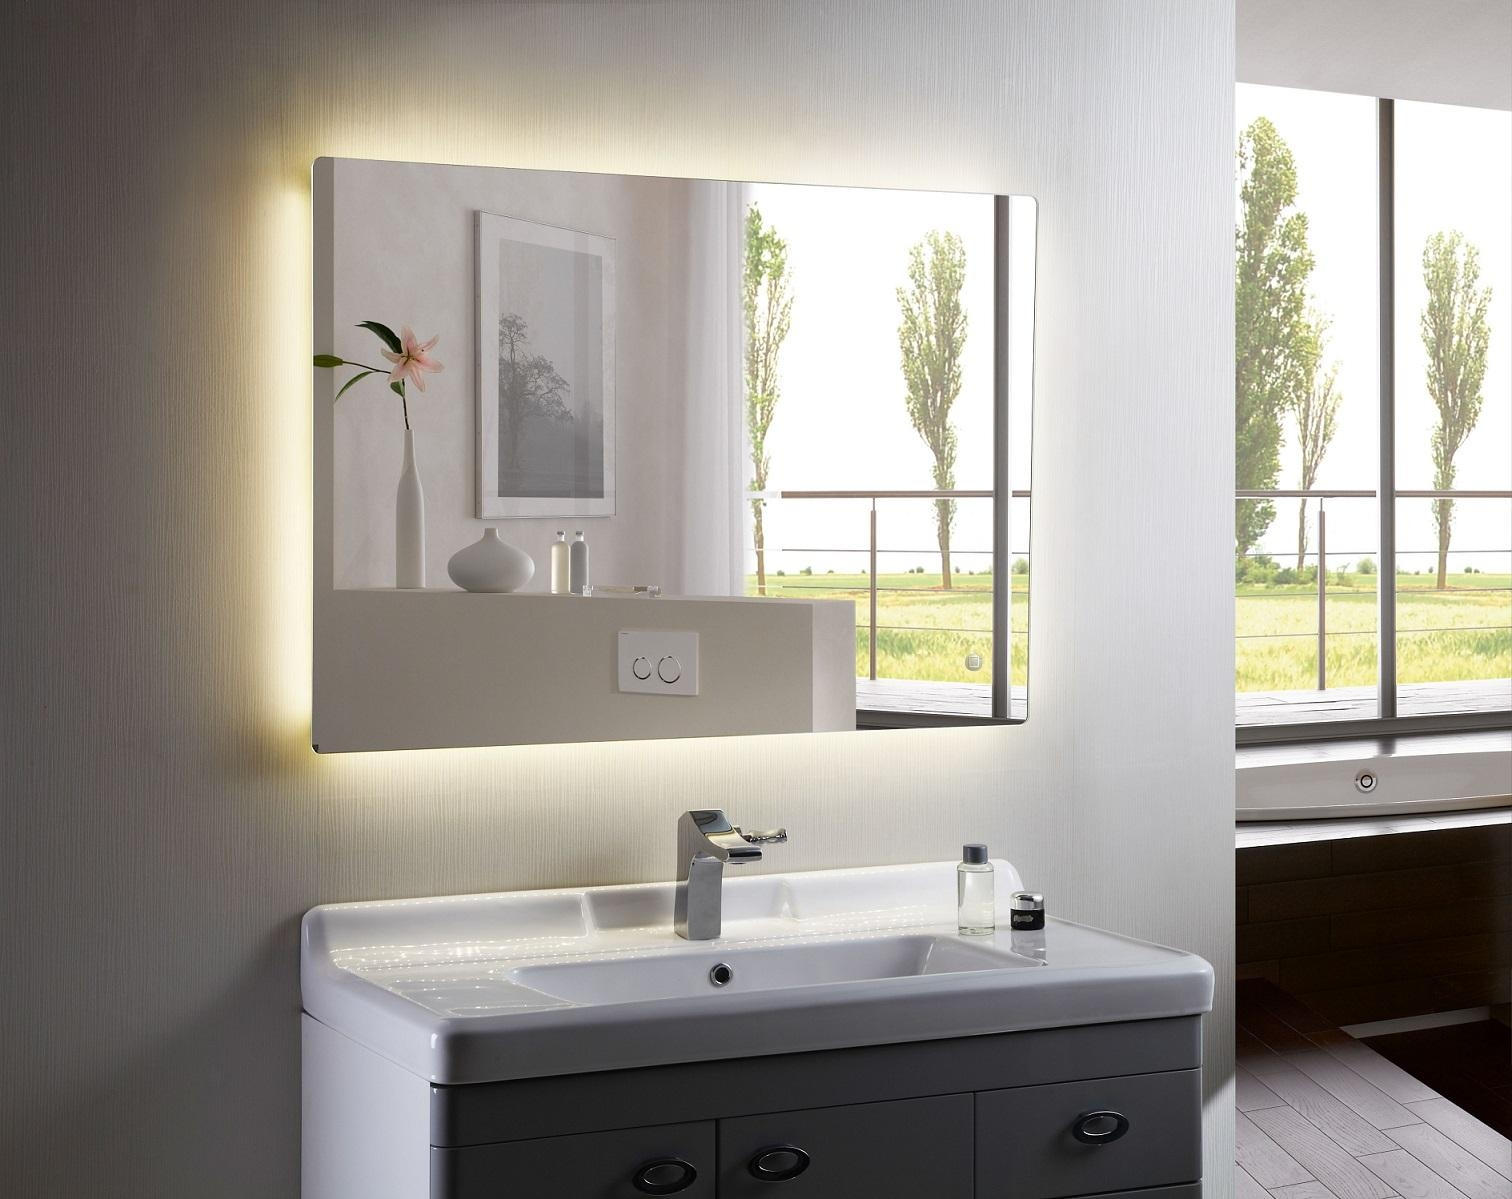 Backlit Bathroom Mirror Types — Home Ideas Collection : Prepare With Light Up Bathroom Mirrors (View 16 of 20)